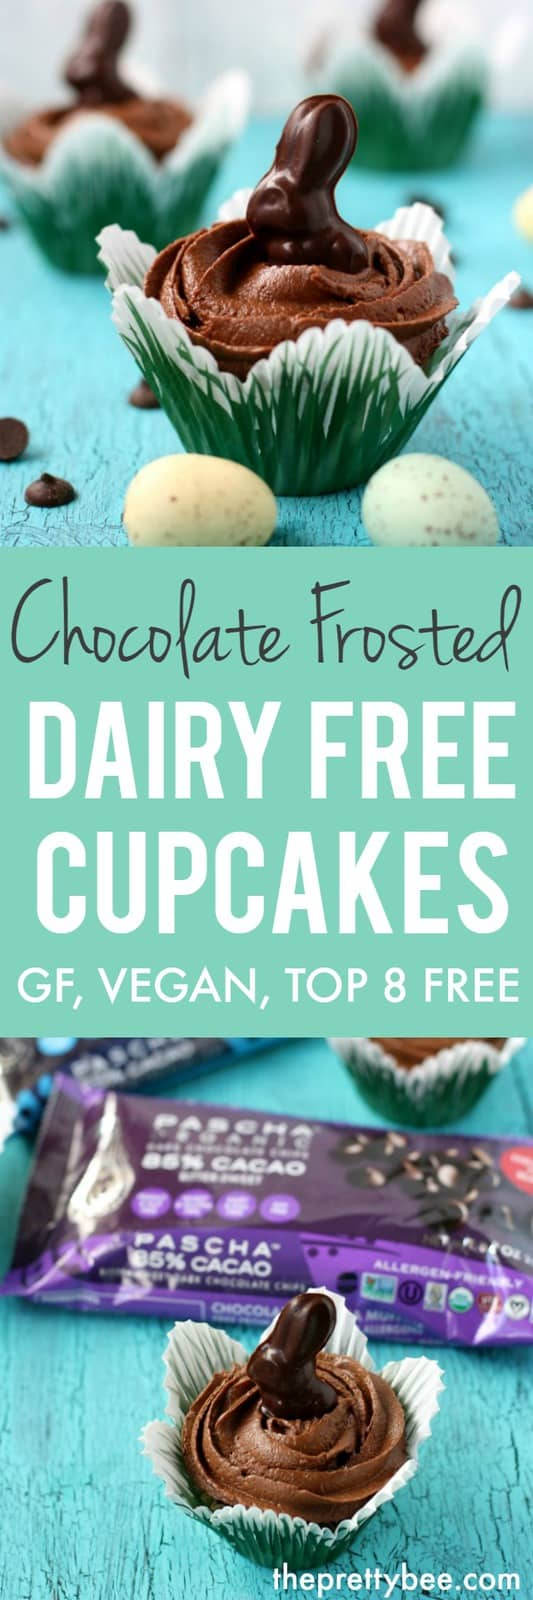 These chocolate frosted dairy free cupcakes are the perfect treat to make for a special occasion! #ad #dairyfree #glutenfree #vegan